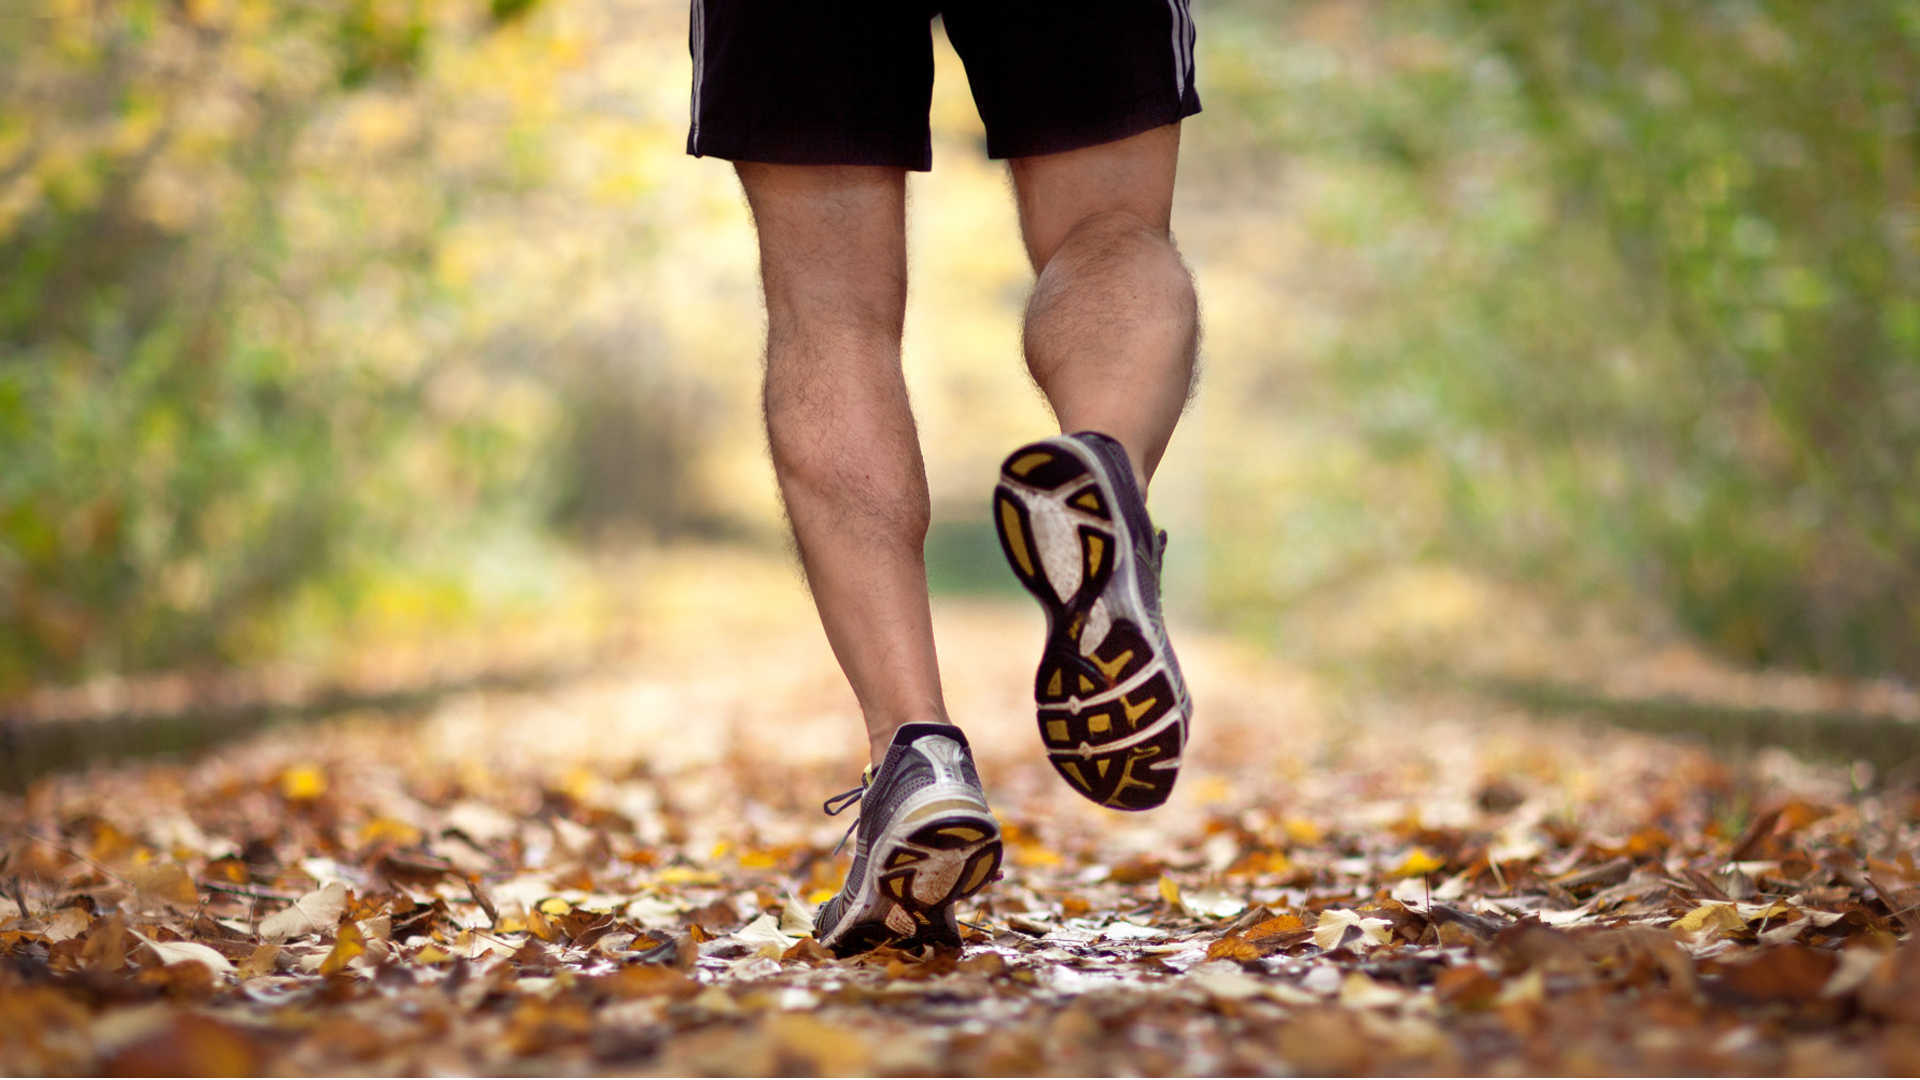 mens-running-shoes-hd-wallpaper-hdwallwide-com